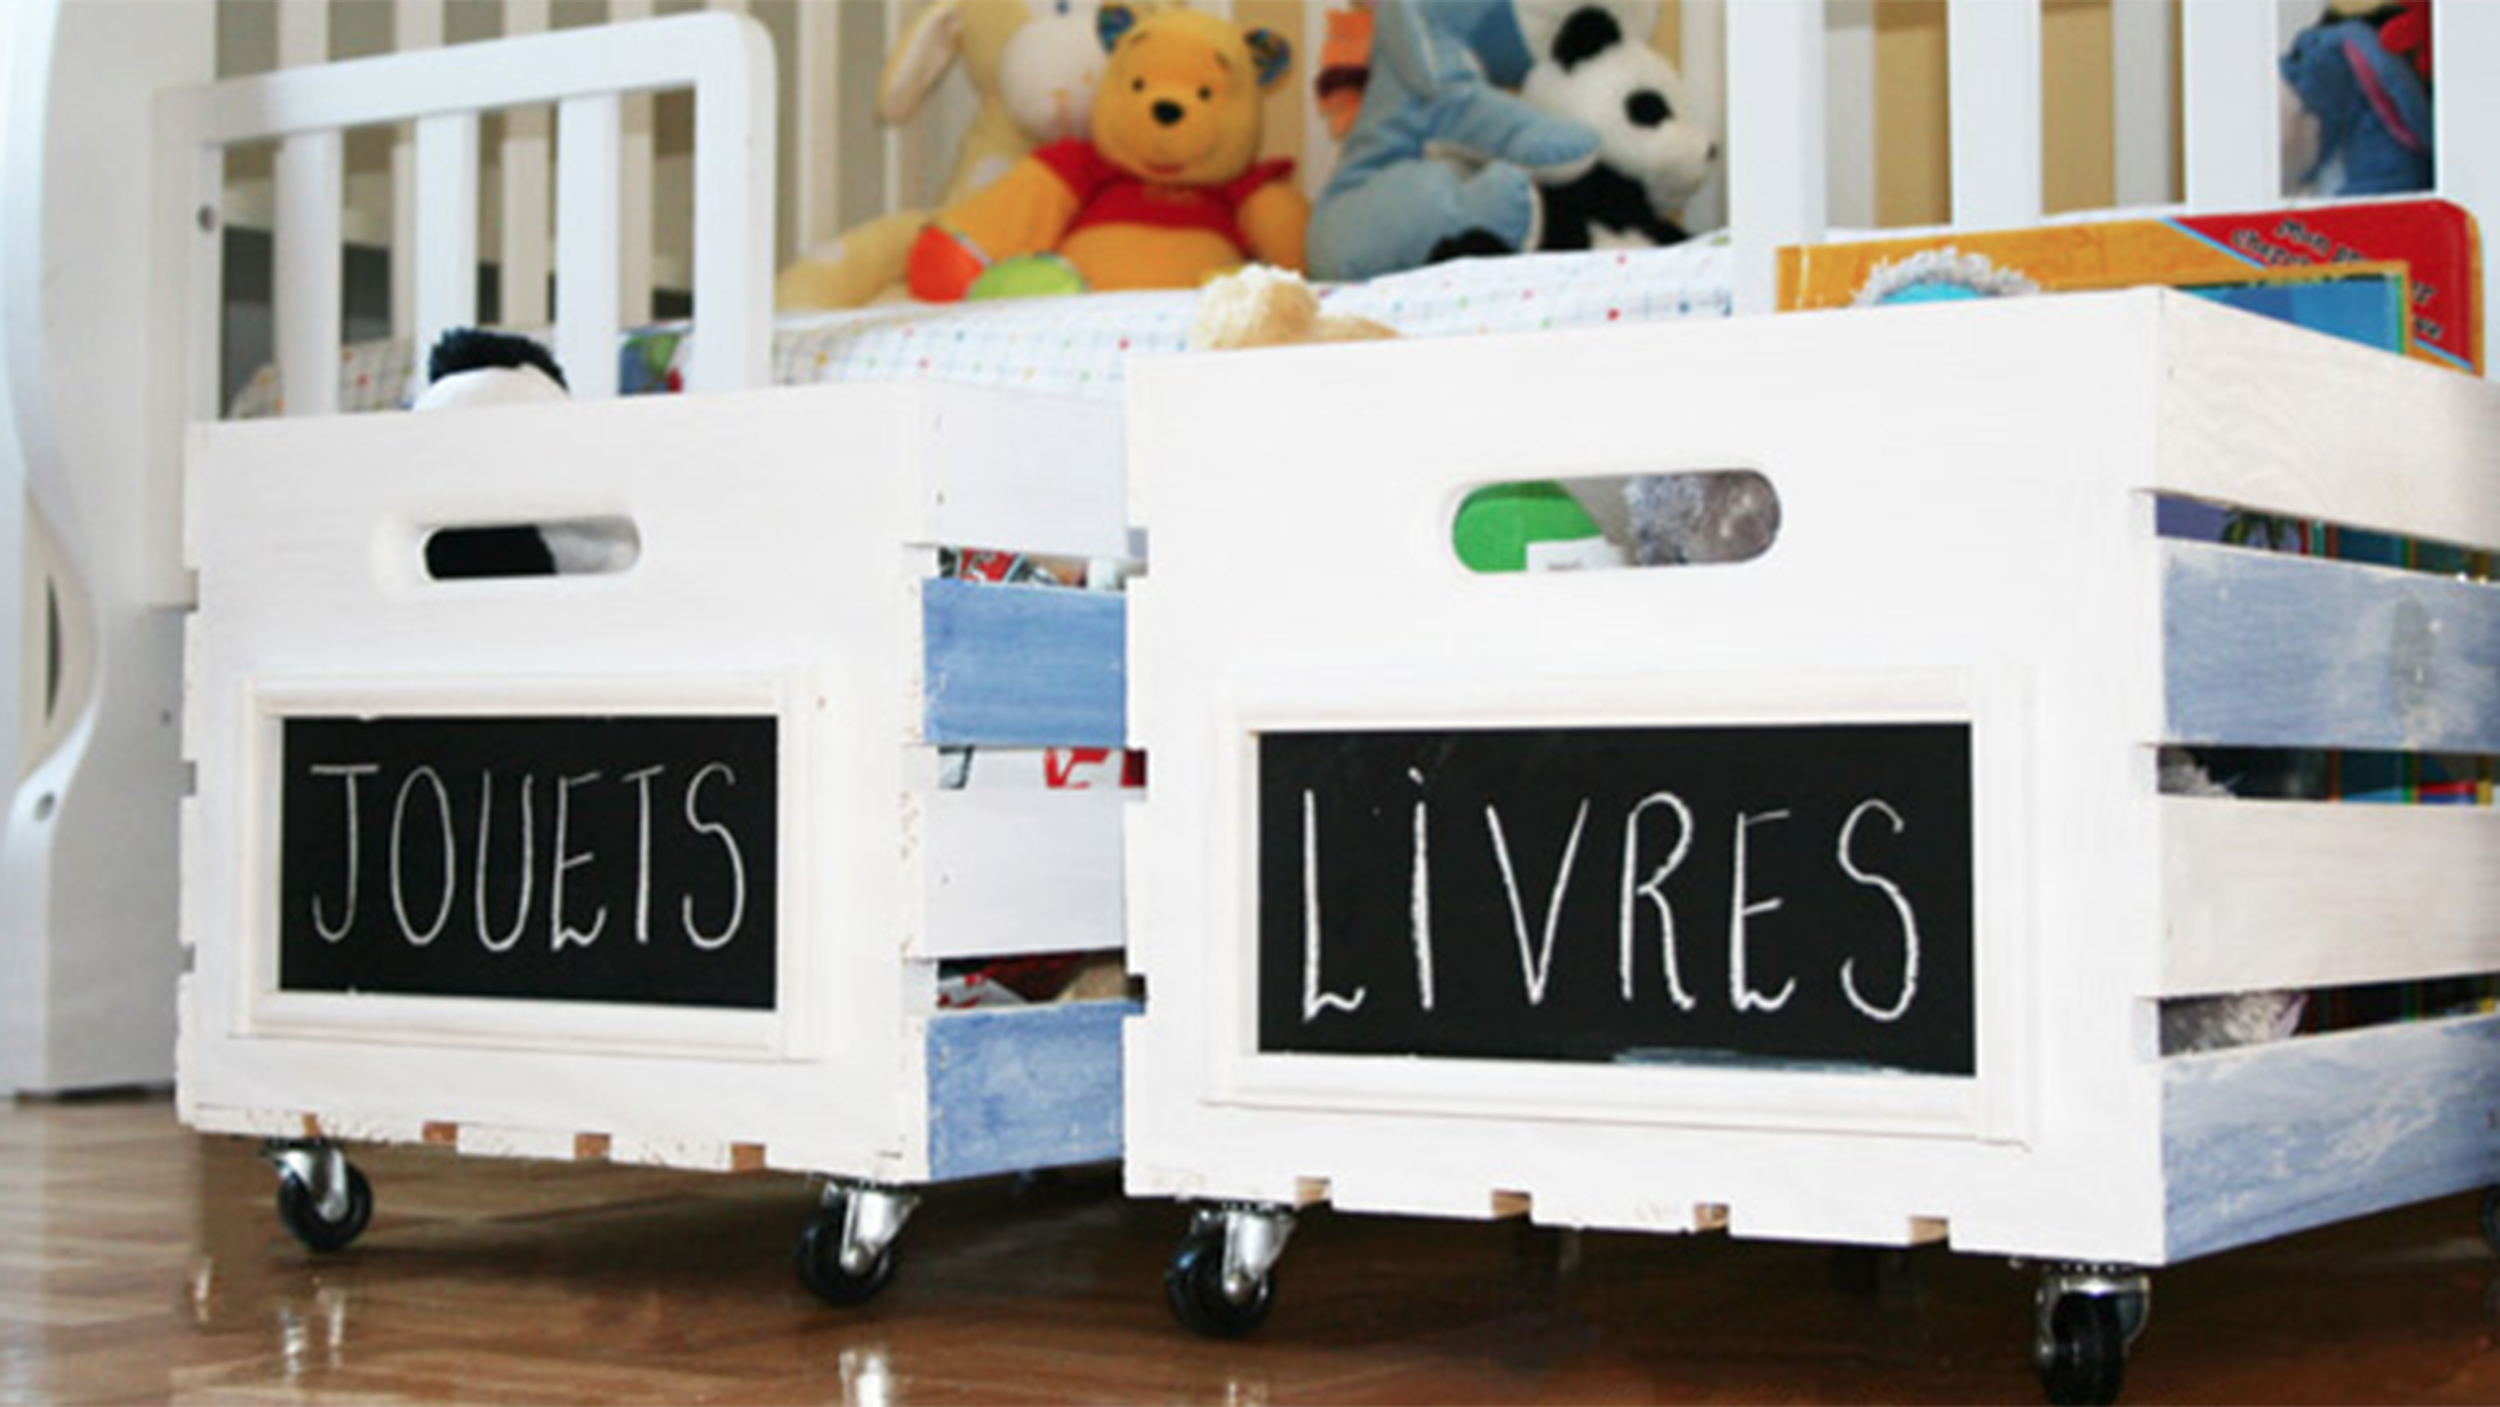 Hide the mess with style: 9 creative D-I-Y toy storage solutions